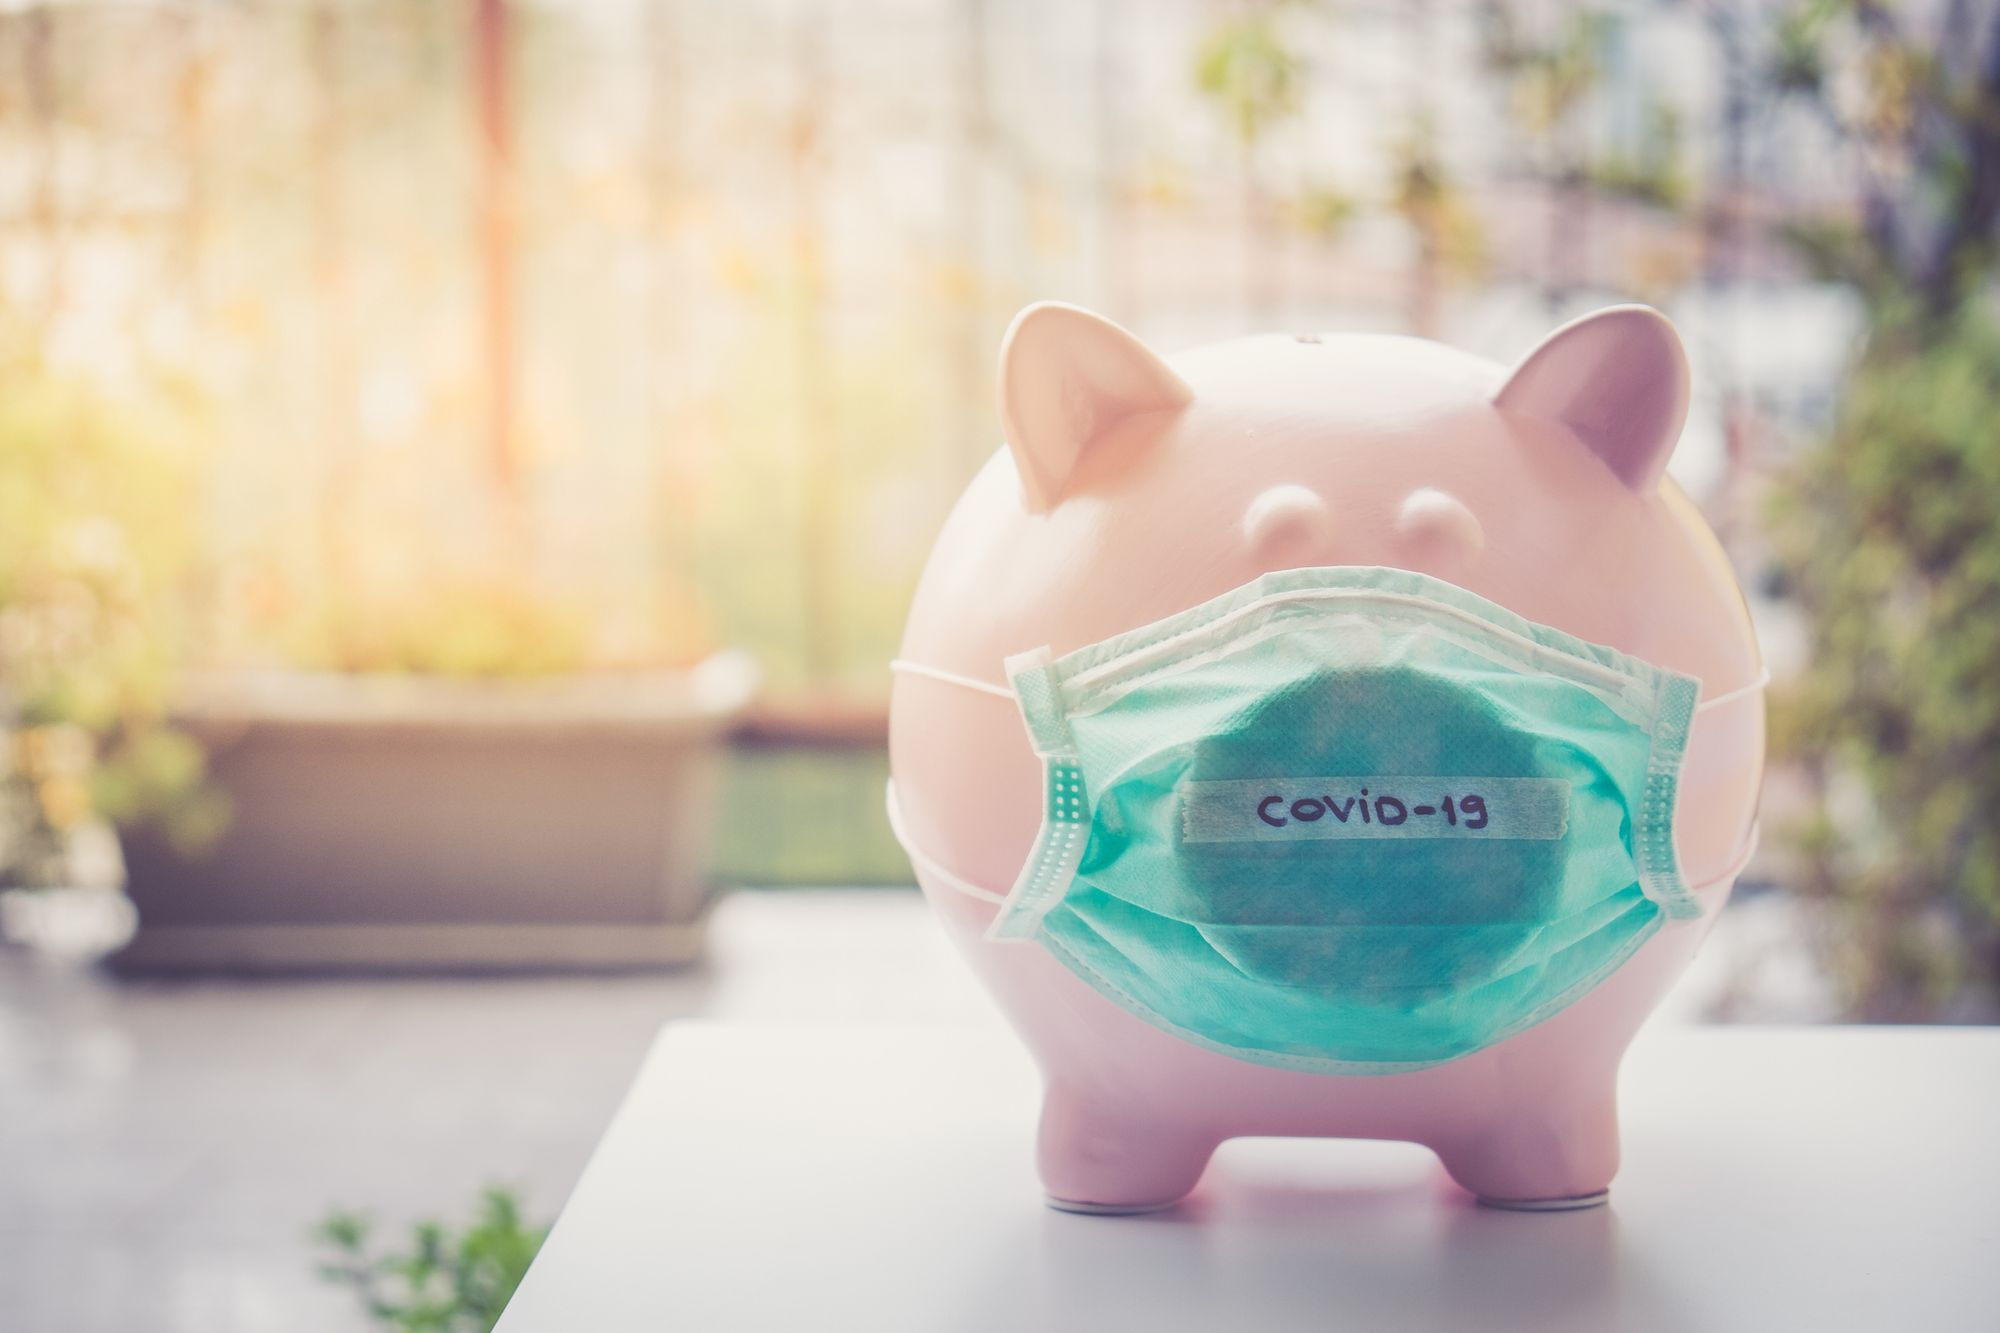 9 Easy Ways to Save Money During COVID-19